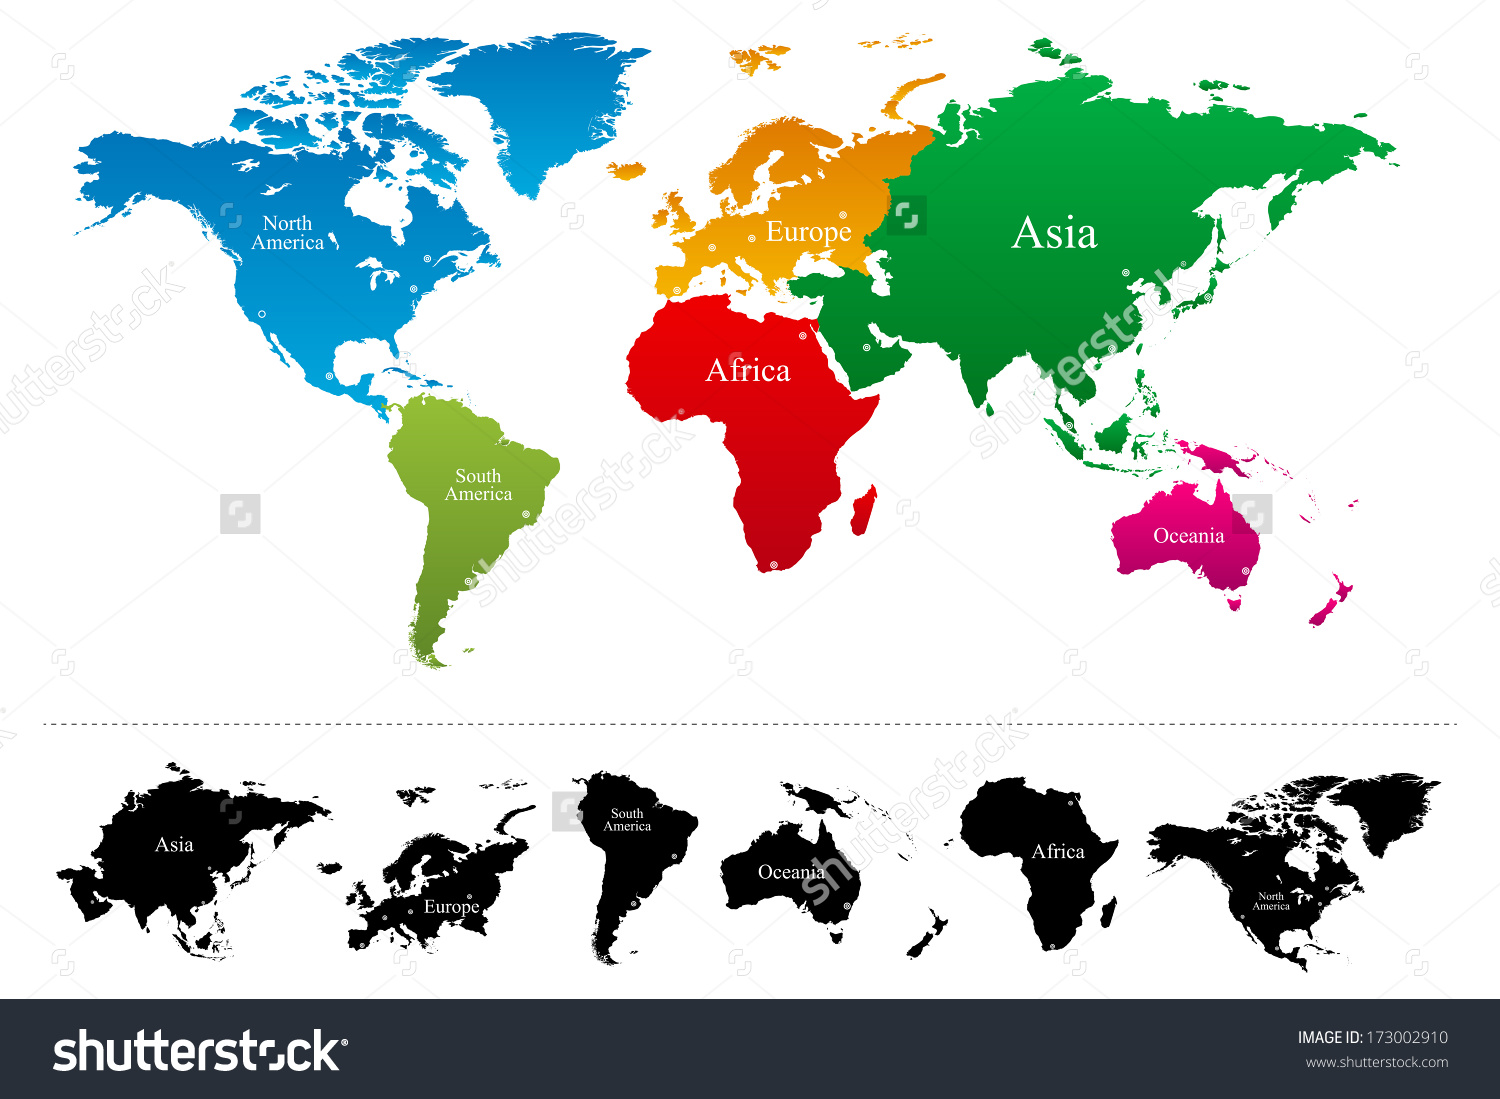 Continents Clipart 20 Free Cliparts